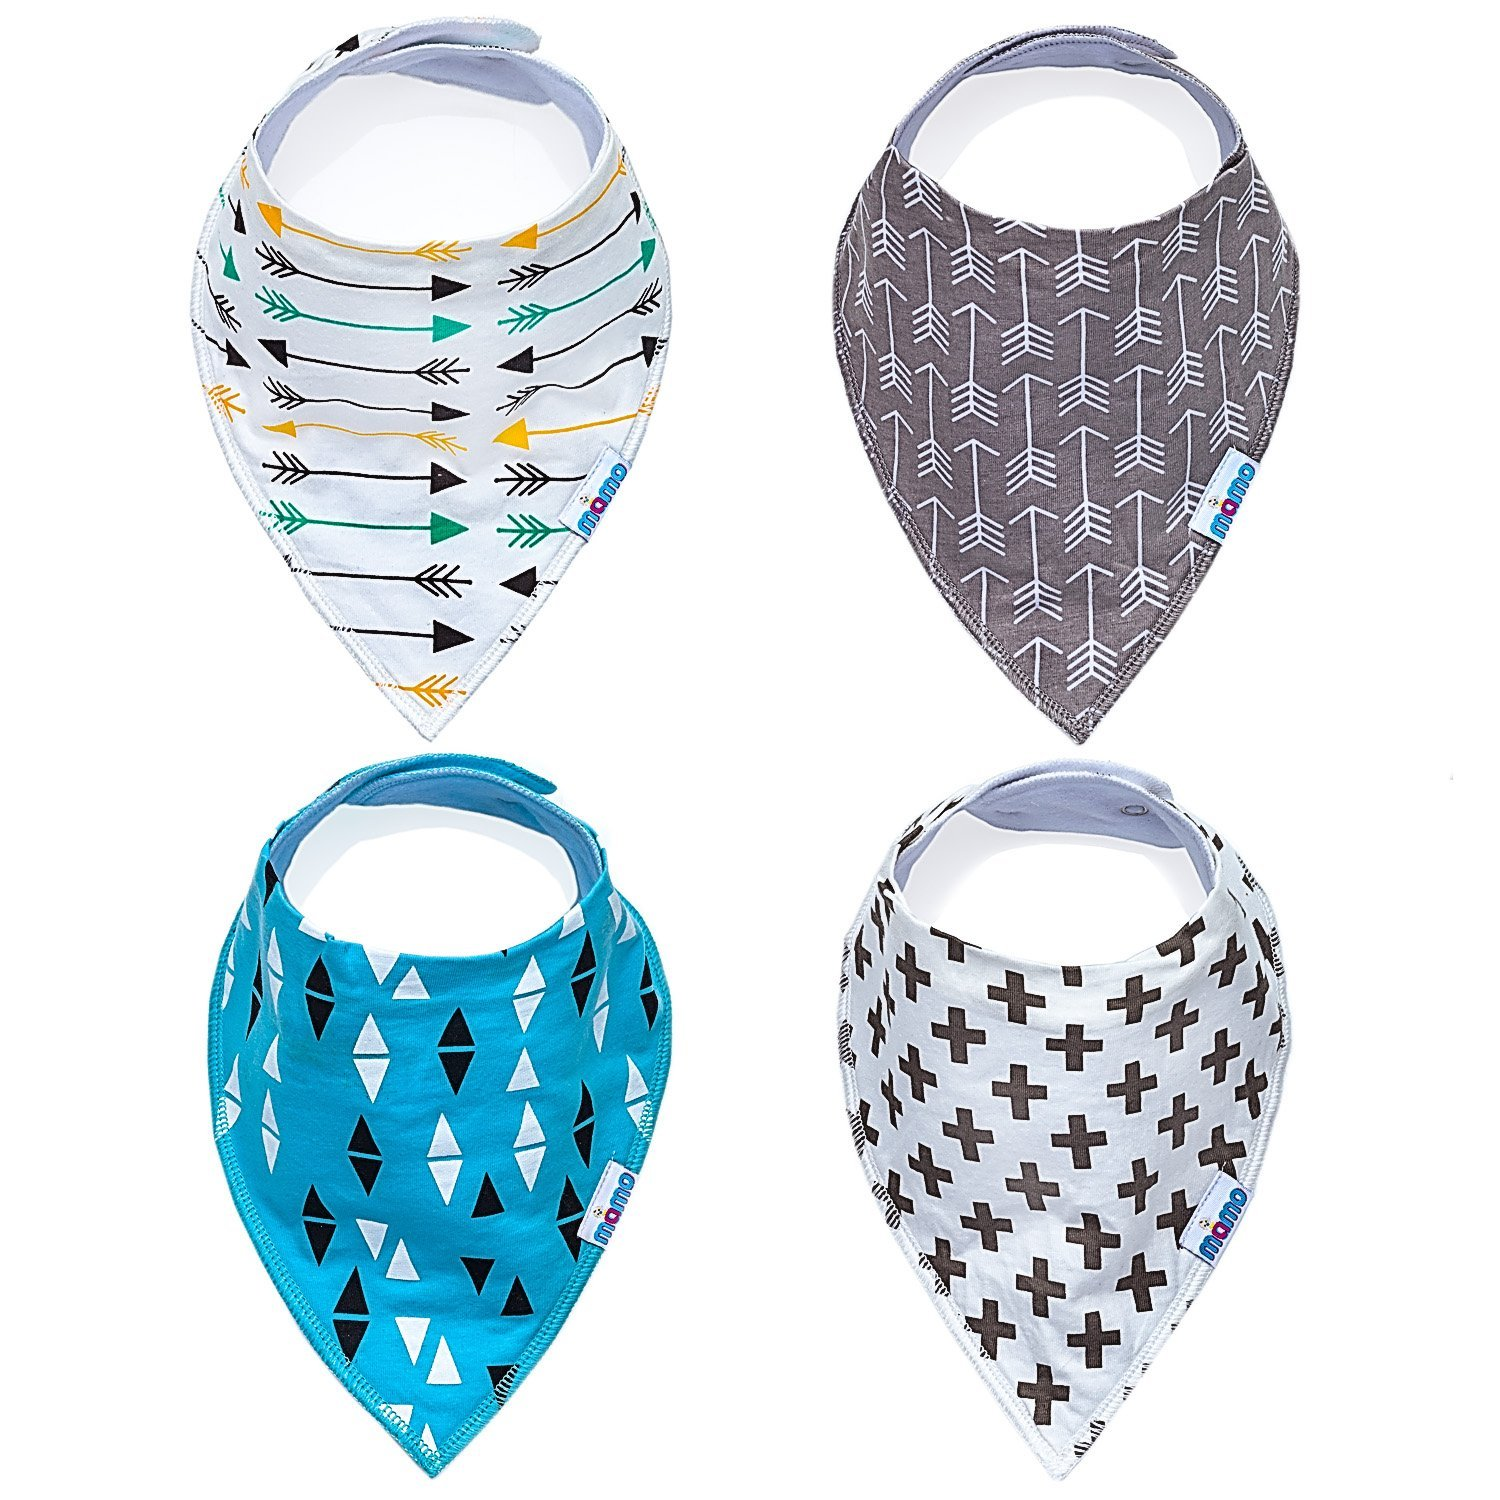 Mamo Premium Baby Bandana Drool Bibs - Unisex 4 Pack Absorbent Cotton With Adjustable Snaps - Cute Baby Gift for Boys & Girls